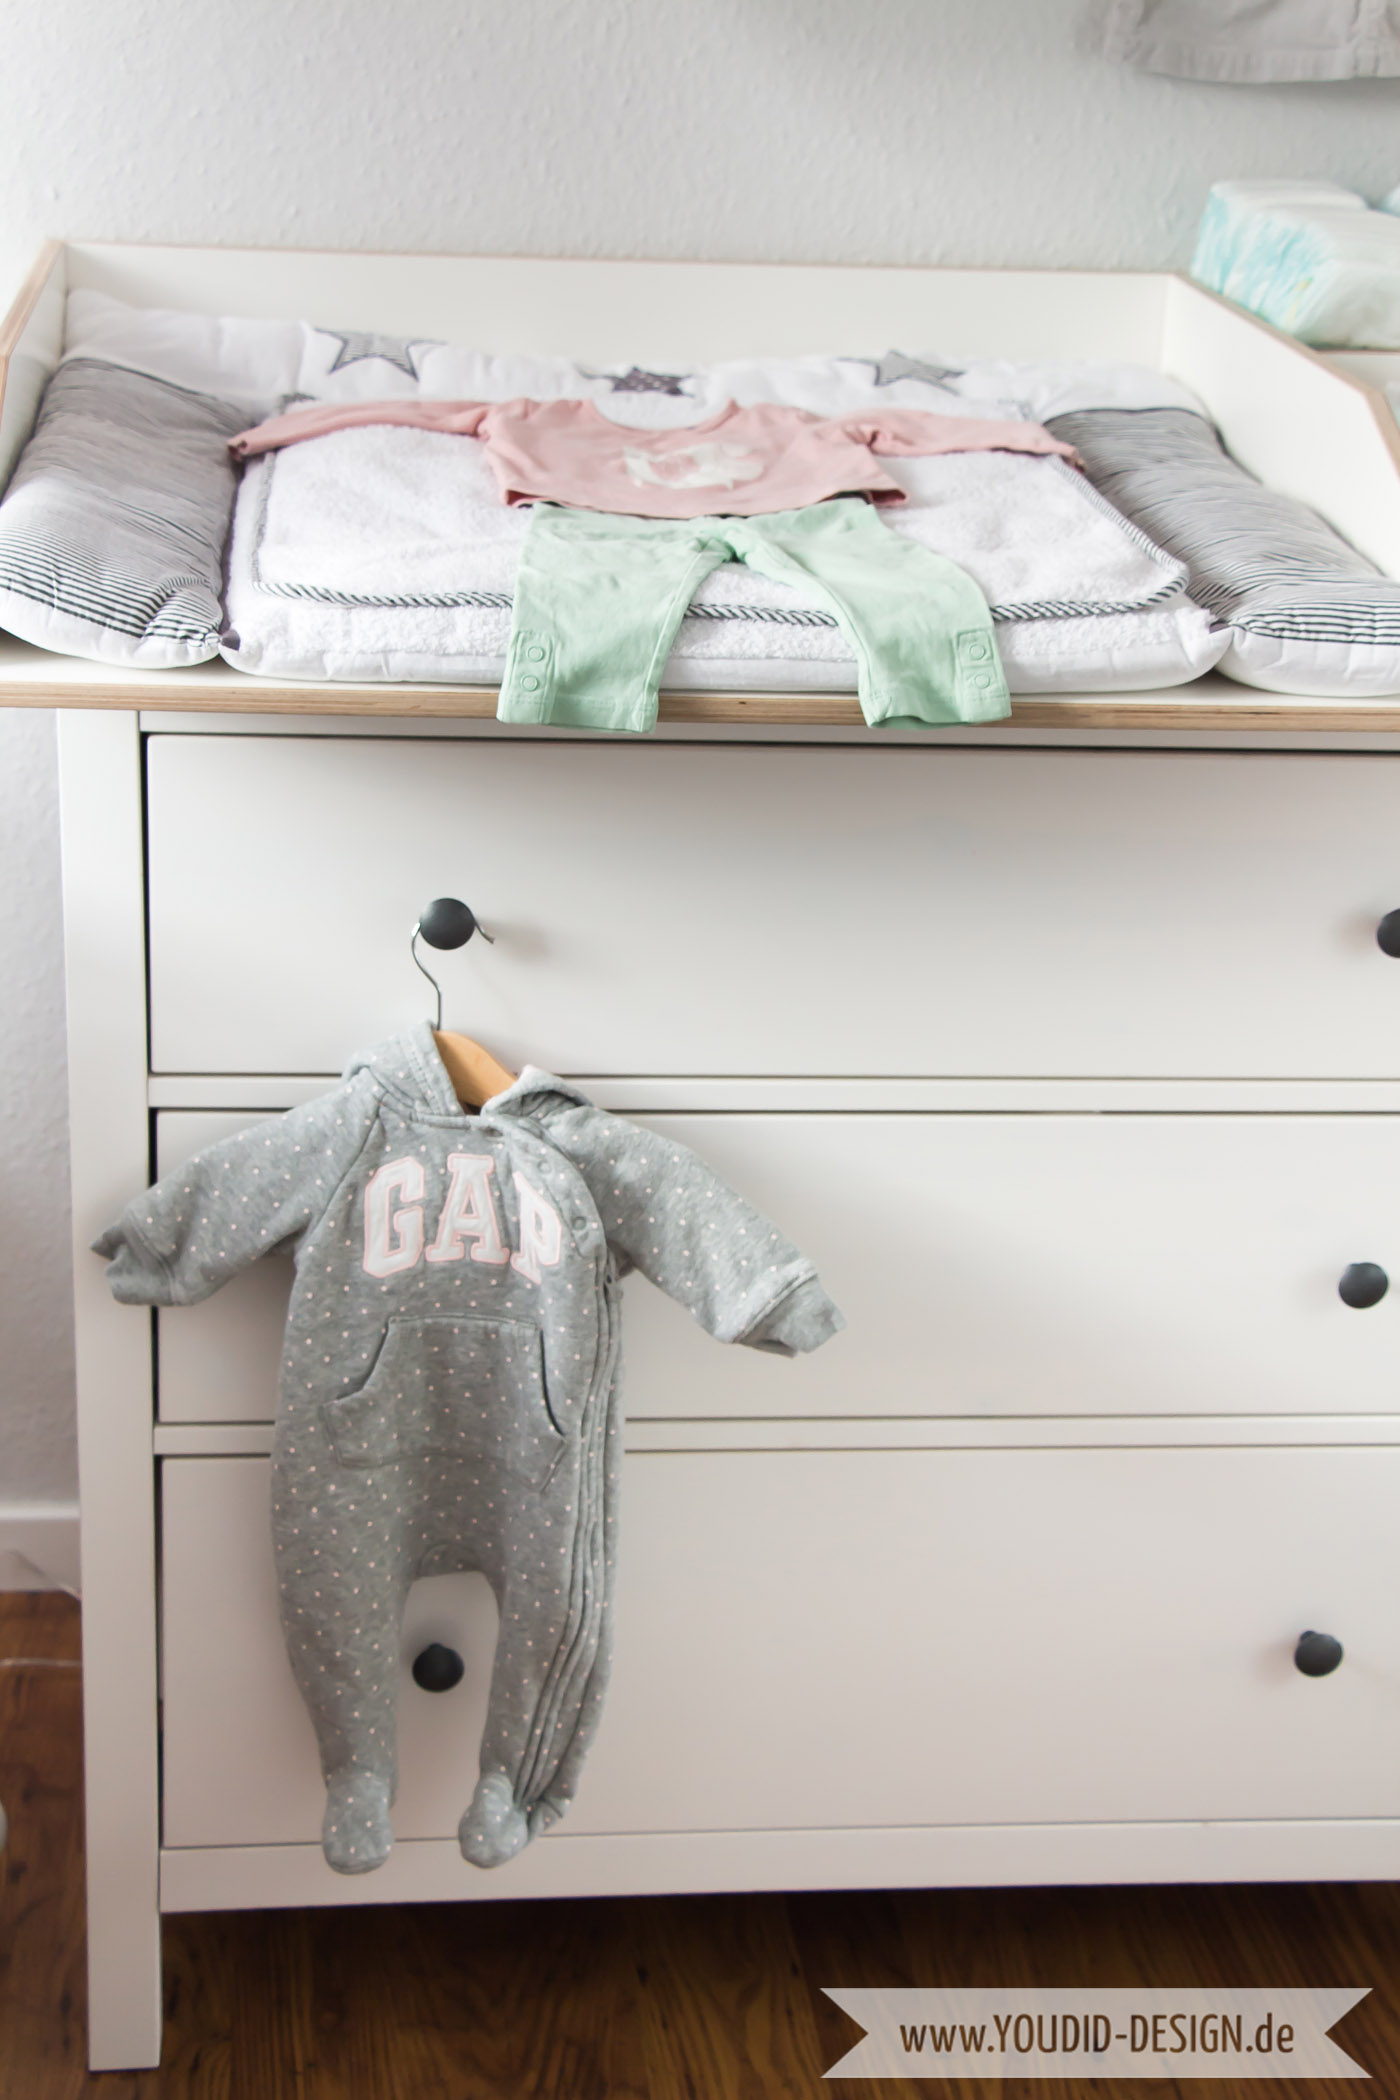 Inspiration-for-a-scandinavian-nursery-Inspirationen-für-ein-skandinavisches-Kinderzimmer-in-mint-blush-IKEA-Hack Wickelaufsatz für die IKEA Hemnes Kommode interior-scandi-nordic-style | www.youdid-design.de